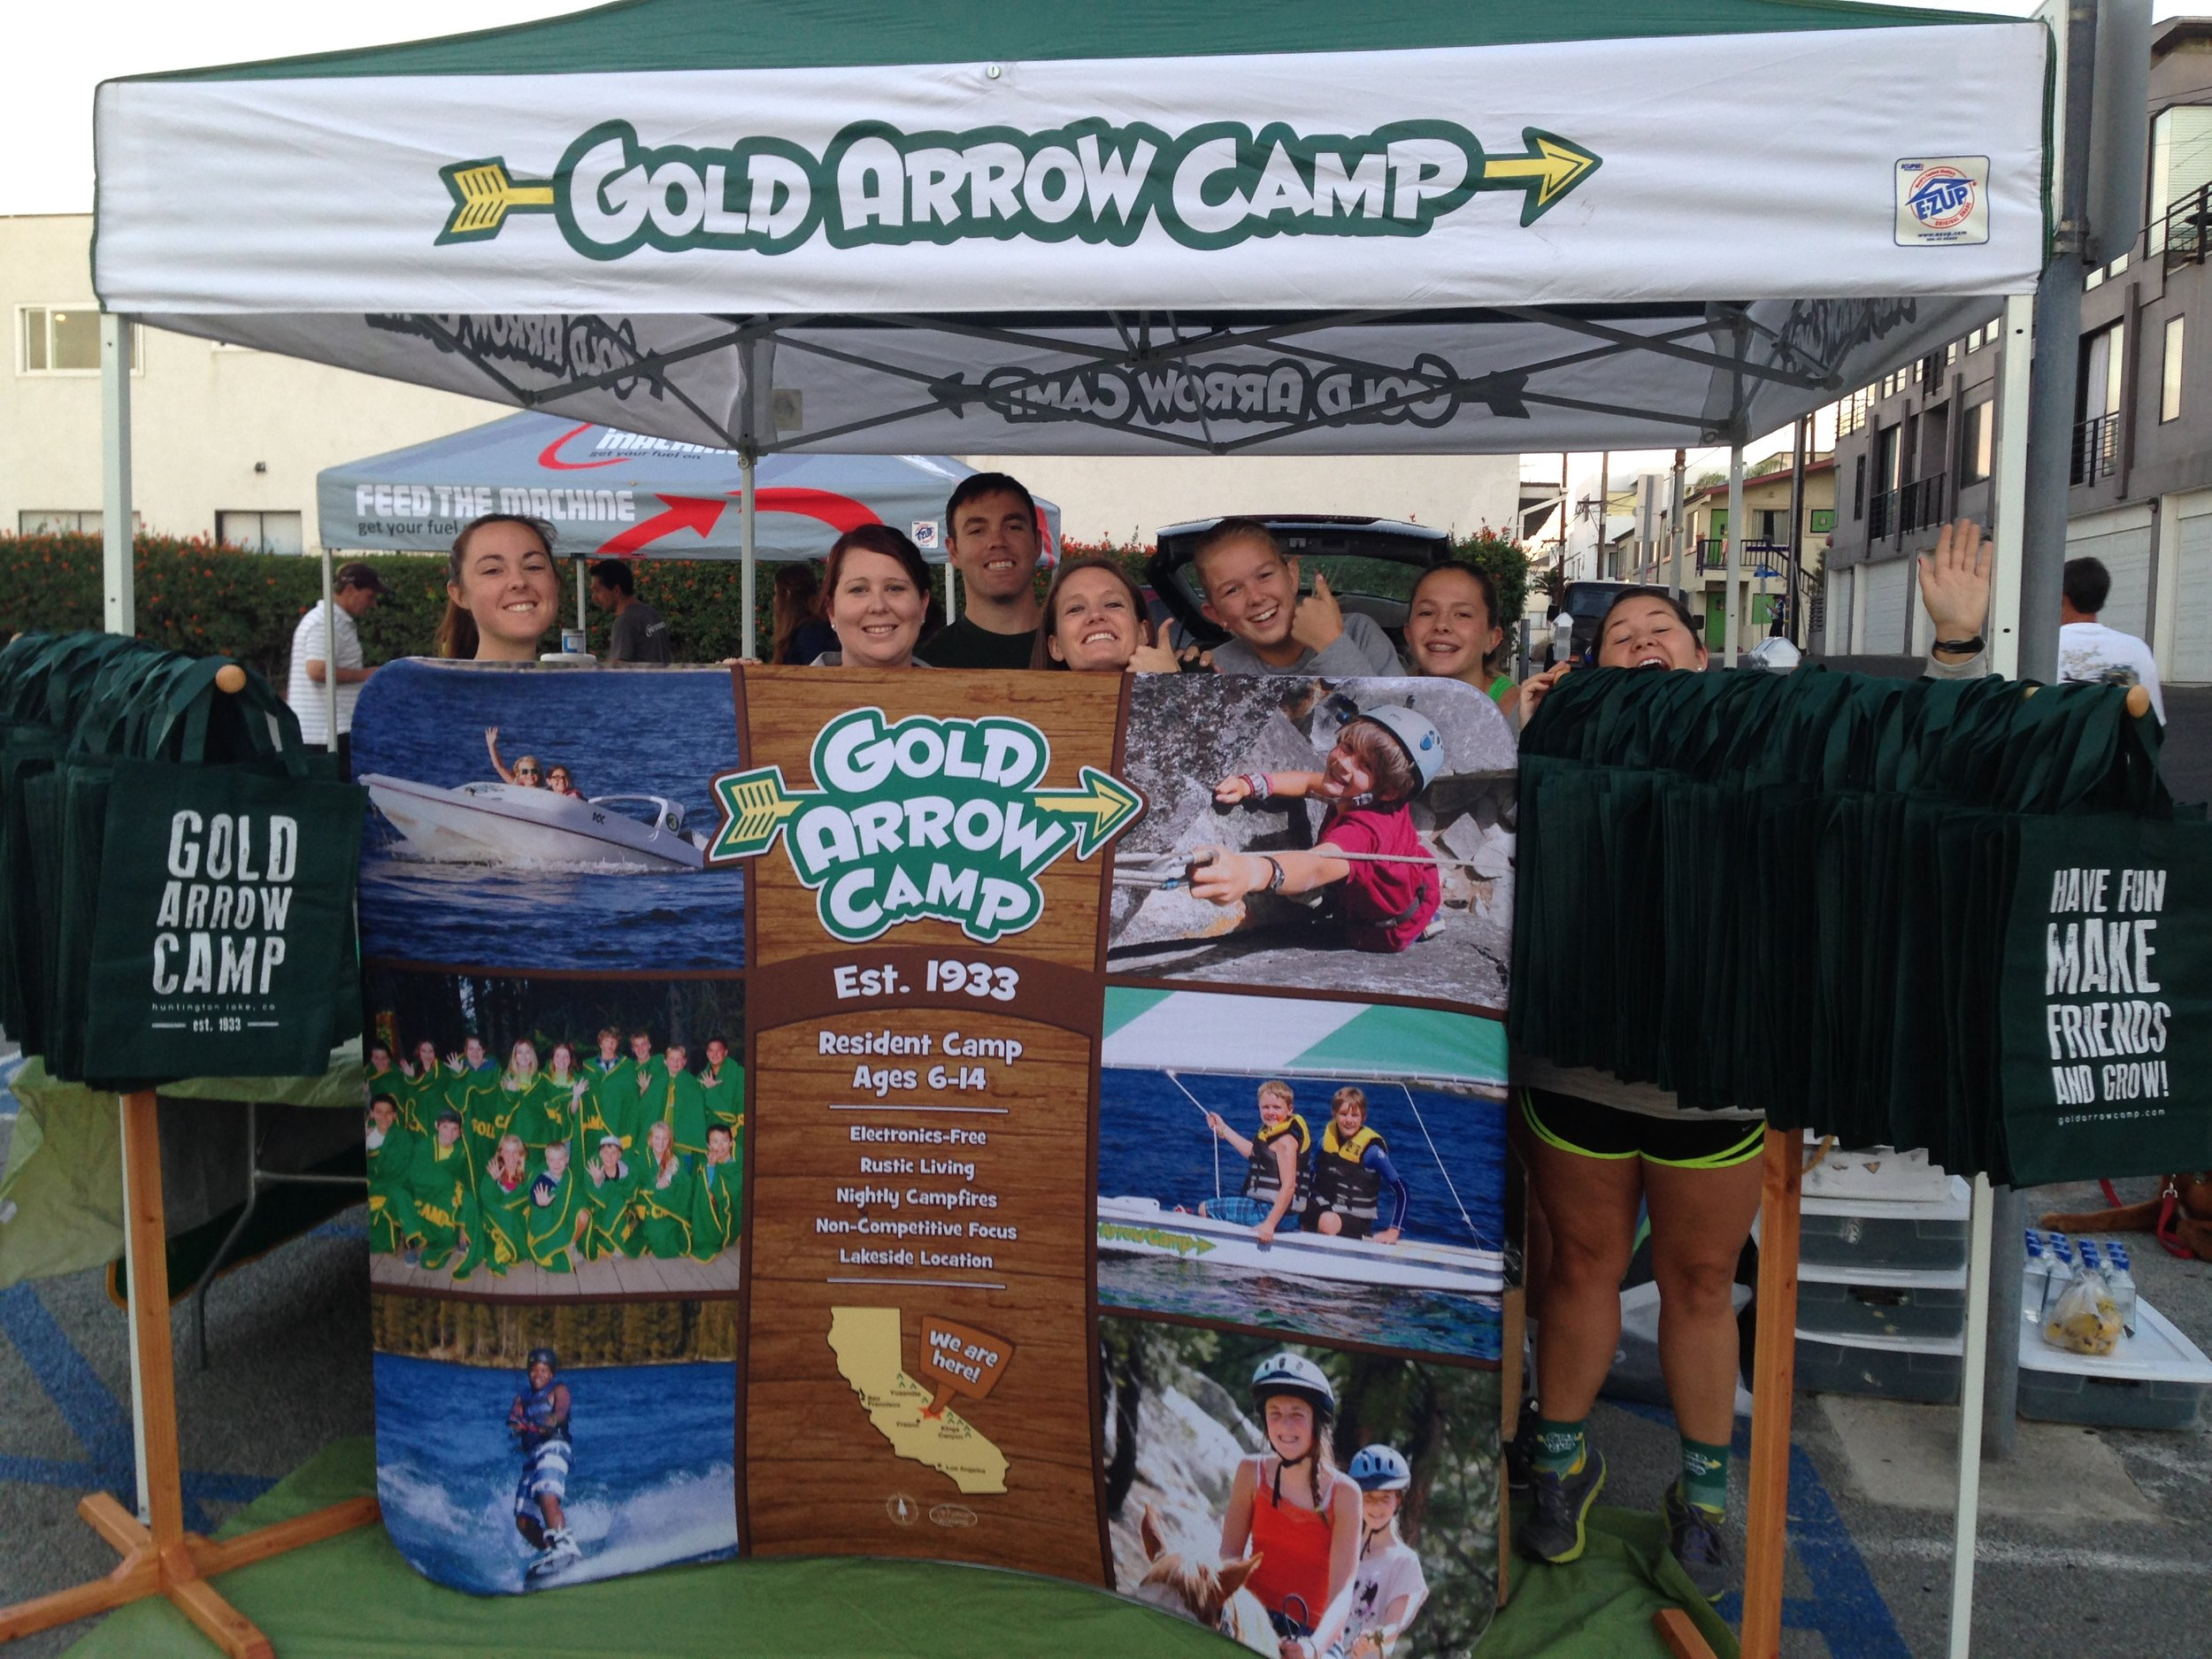 Gold Arrow Camp at the 2018 Manhattan Beach 10k Expo.